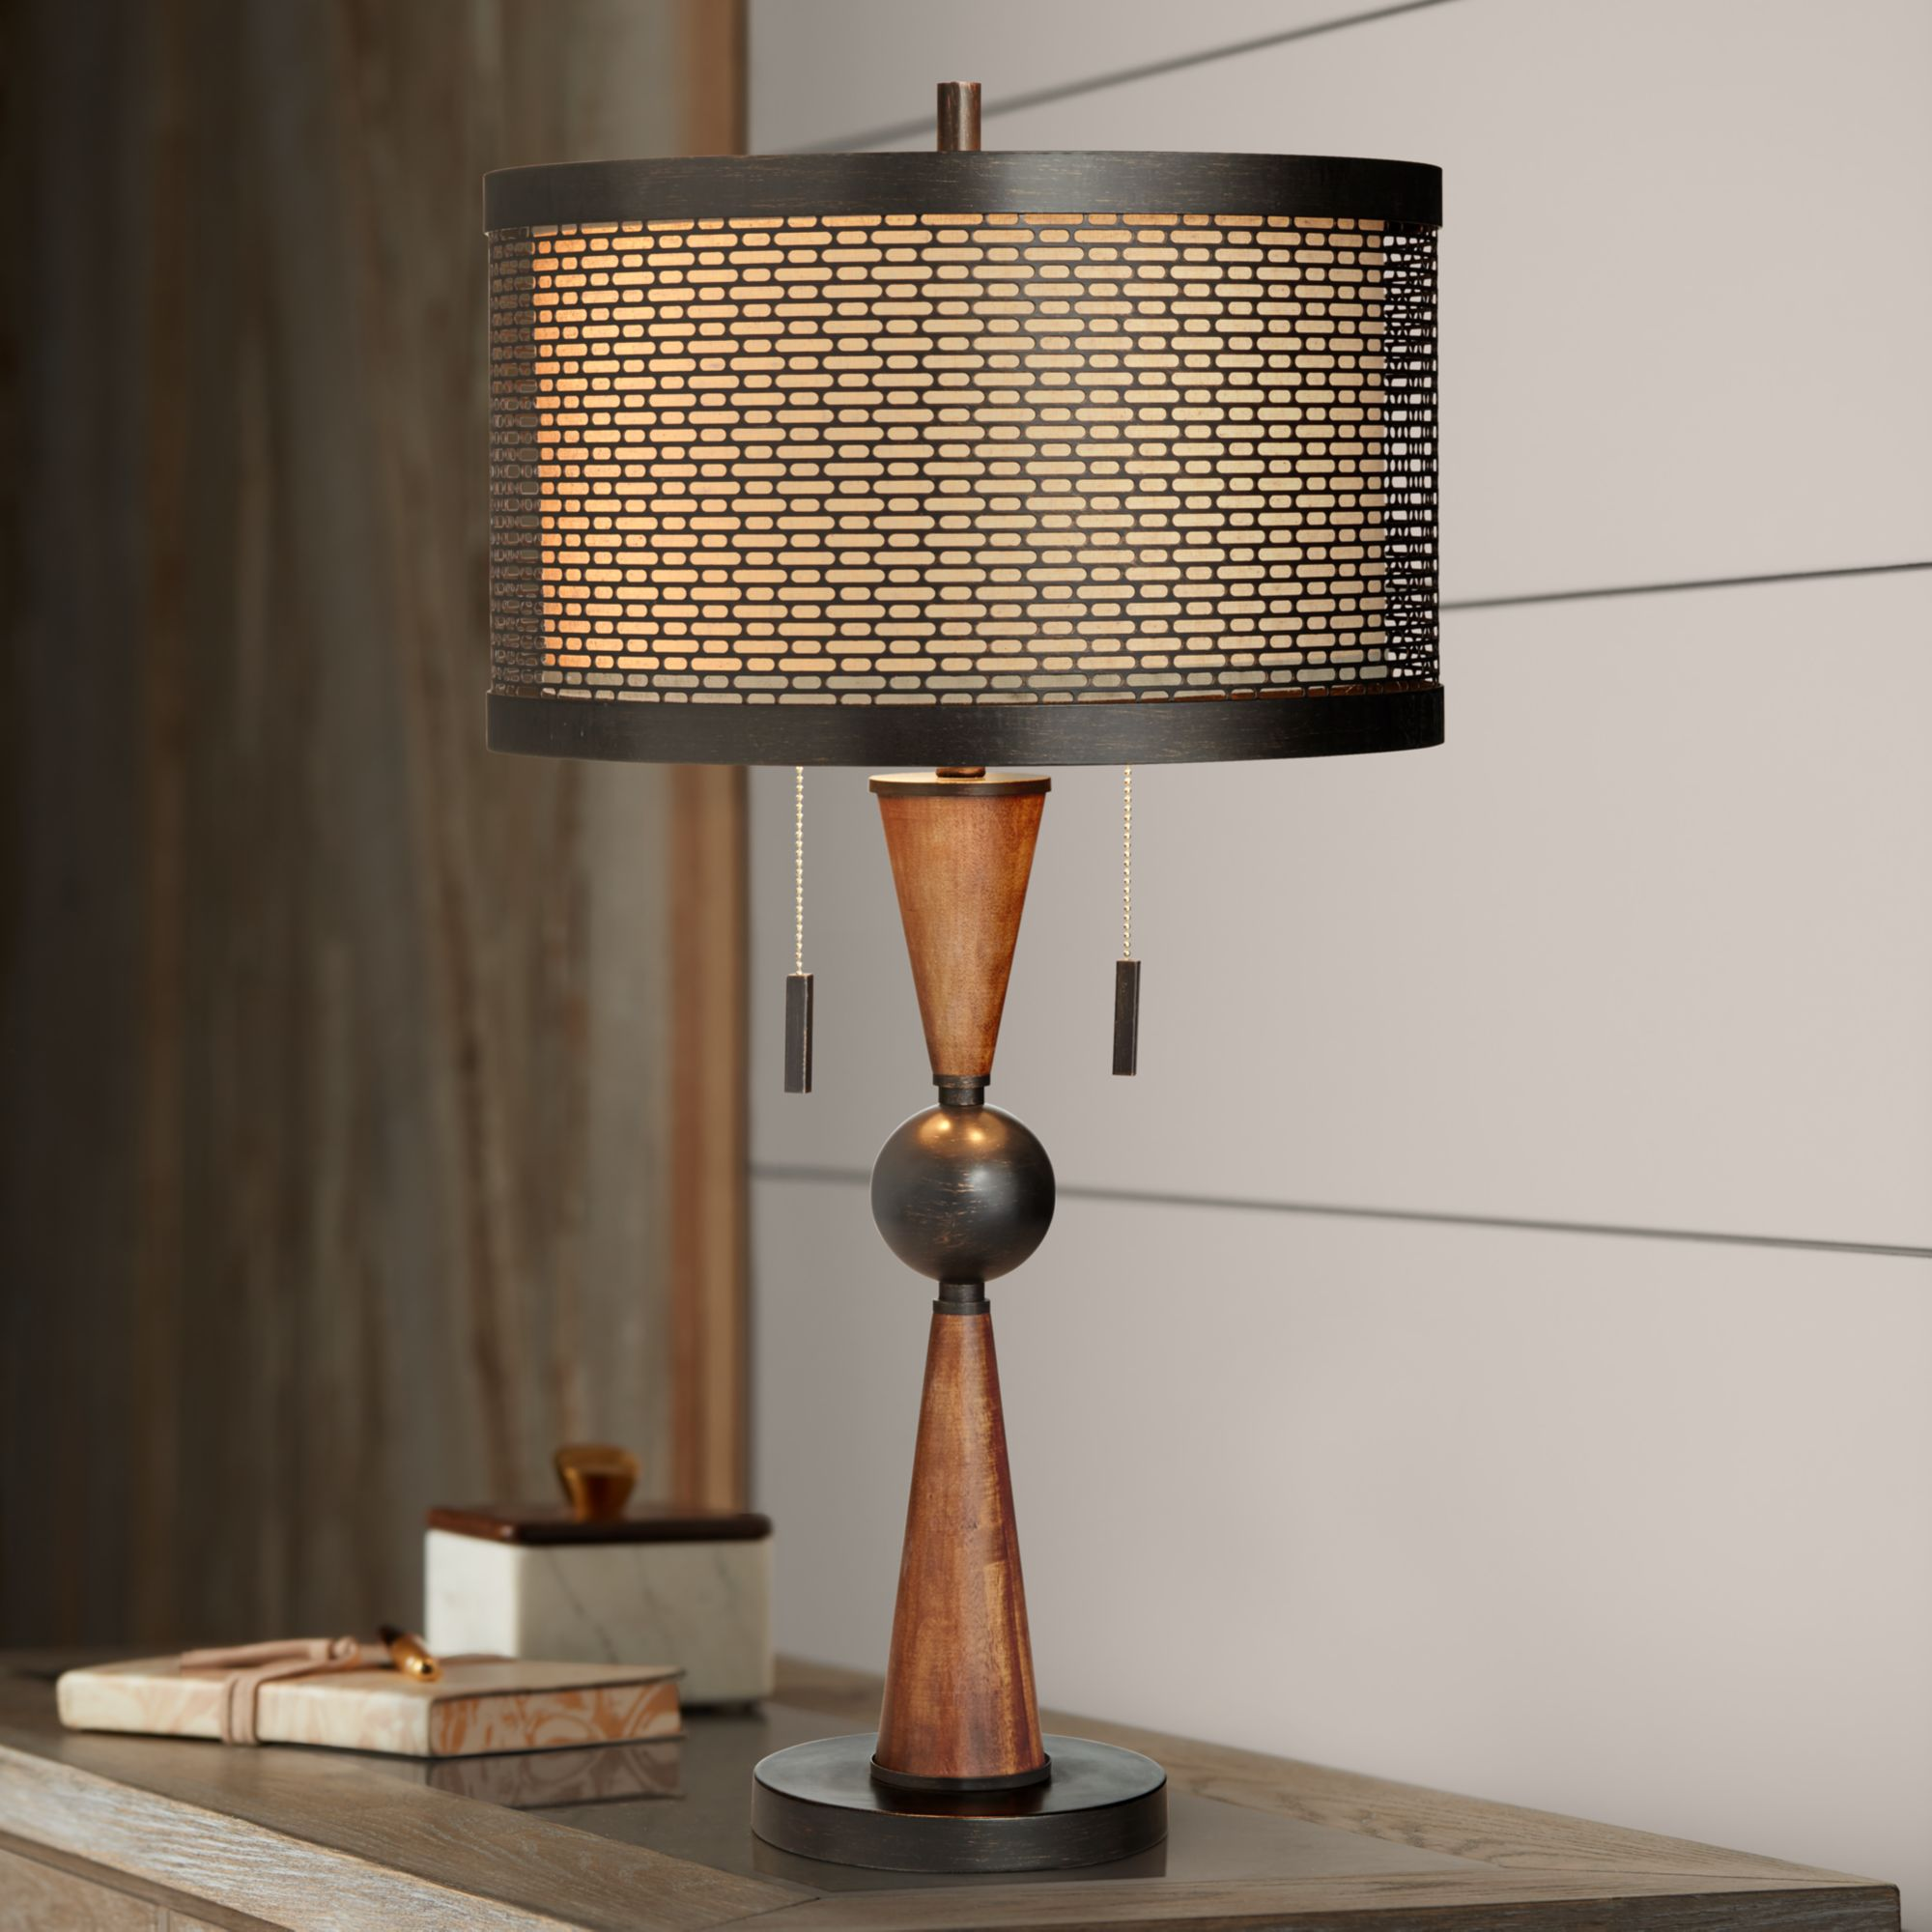 Picture of: Franklin Iron Works Mid Century Modern Table Lamp Wood Bronze Metal Shade For Living Room Family Bedroom Bedside Nightstand Office Walmart Com Walmart Com